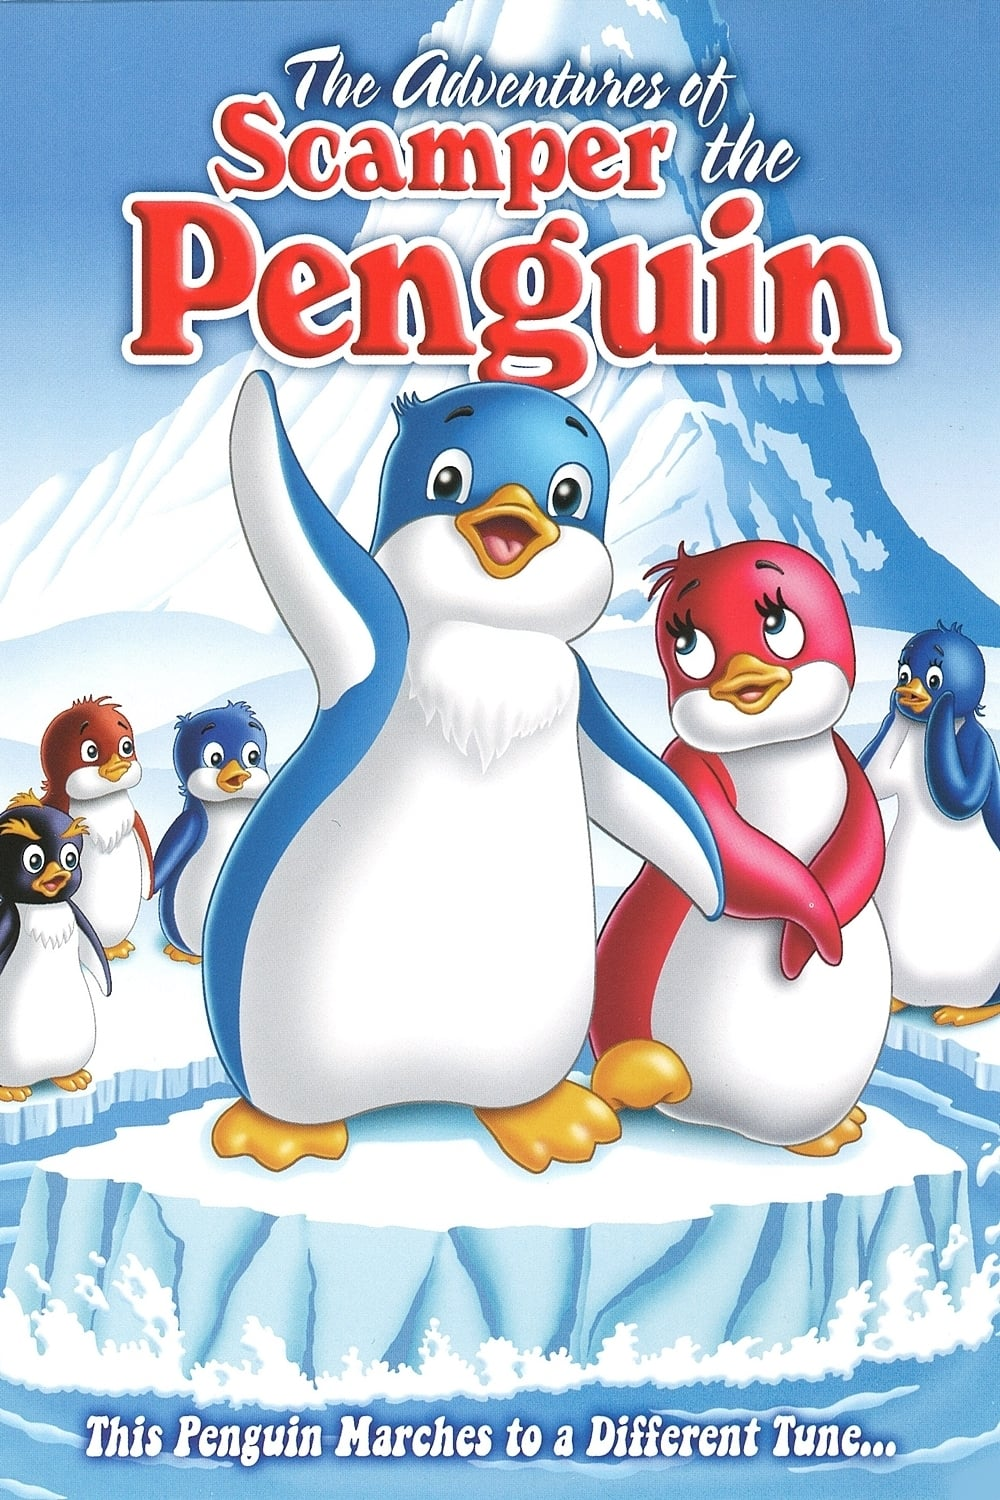 The Adventures of Scamper the Penguin (1987)